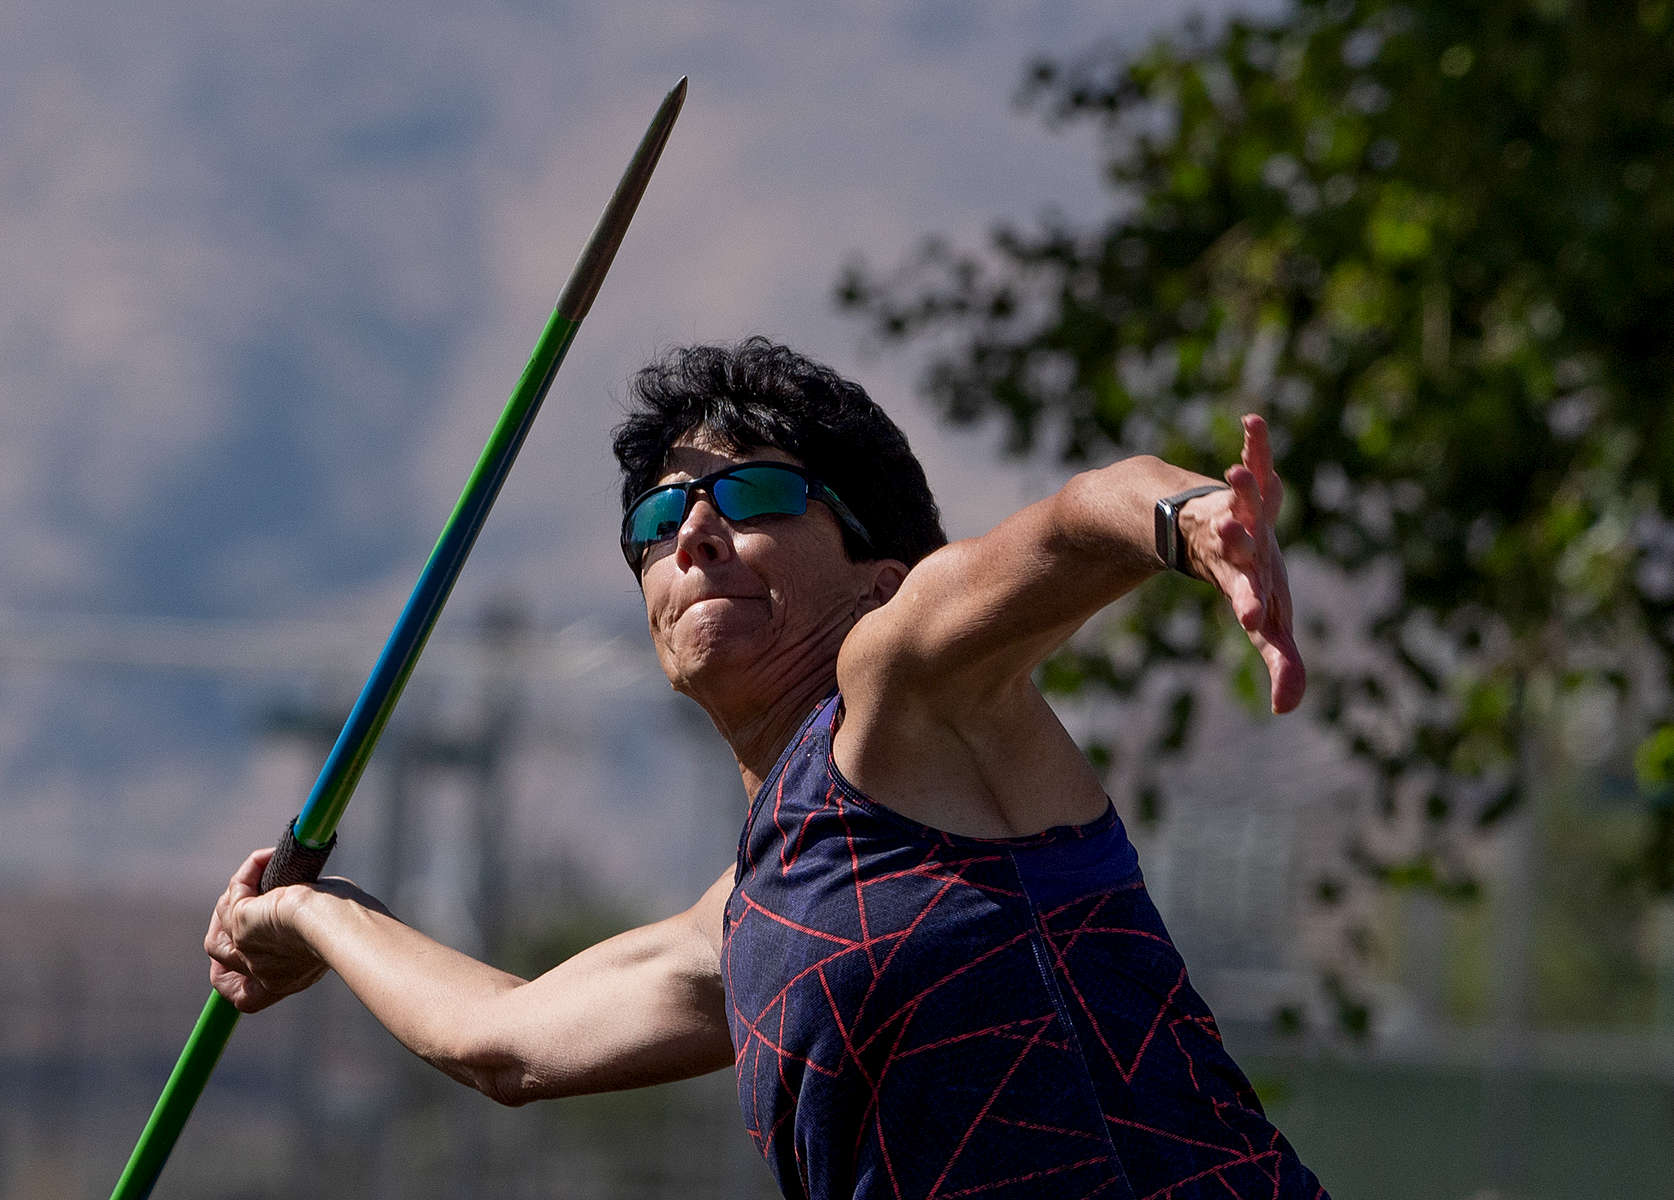 Senior athlete Linda Cohn aged sixty six competes in the Javelin event during the Huntsman World Senior Games on October 14, 2019 in St. George, Utah. Cohn is the world record holder in the Javelin in her age group of 65-70 years old.